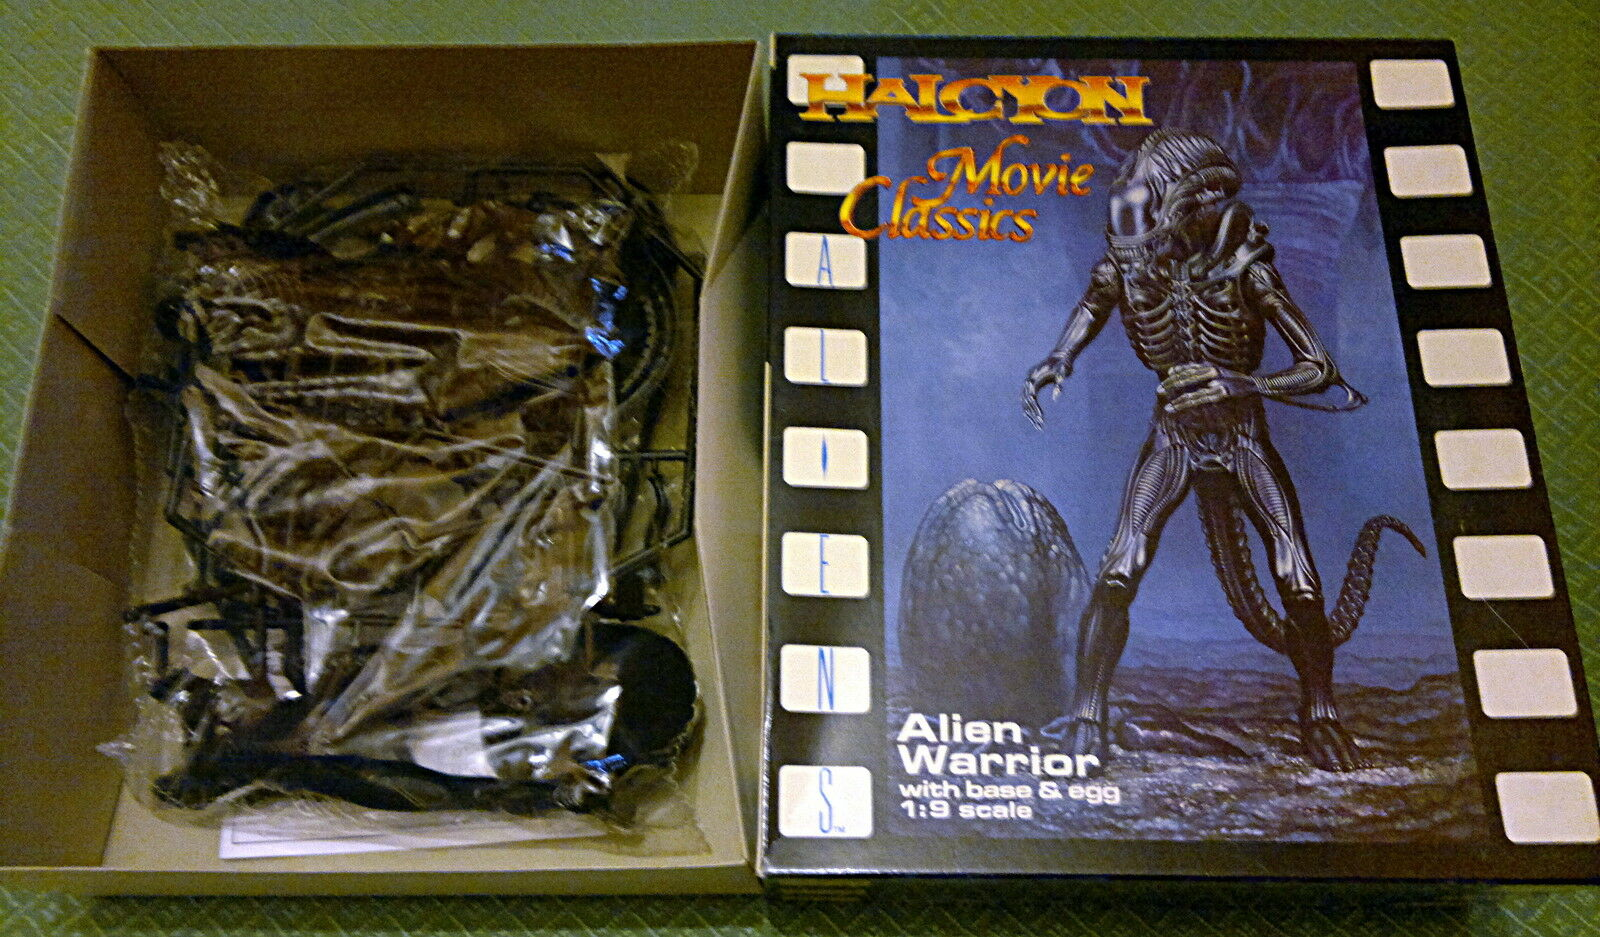 Halcyon Alien warrior with  base and egg Movie Classic  vente au rabais